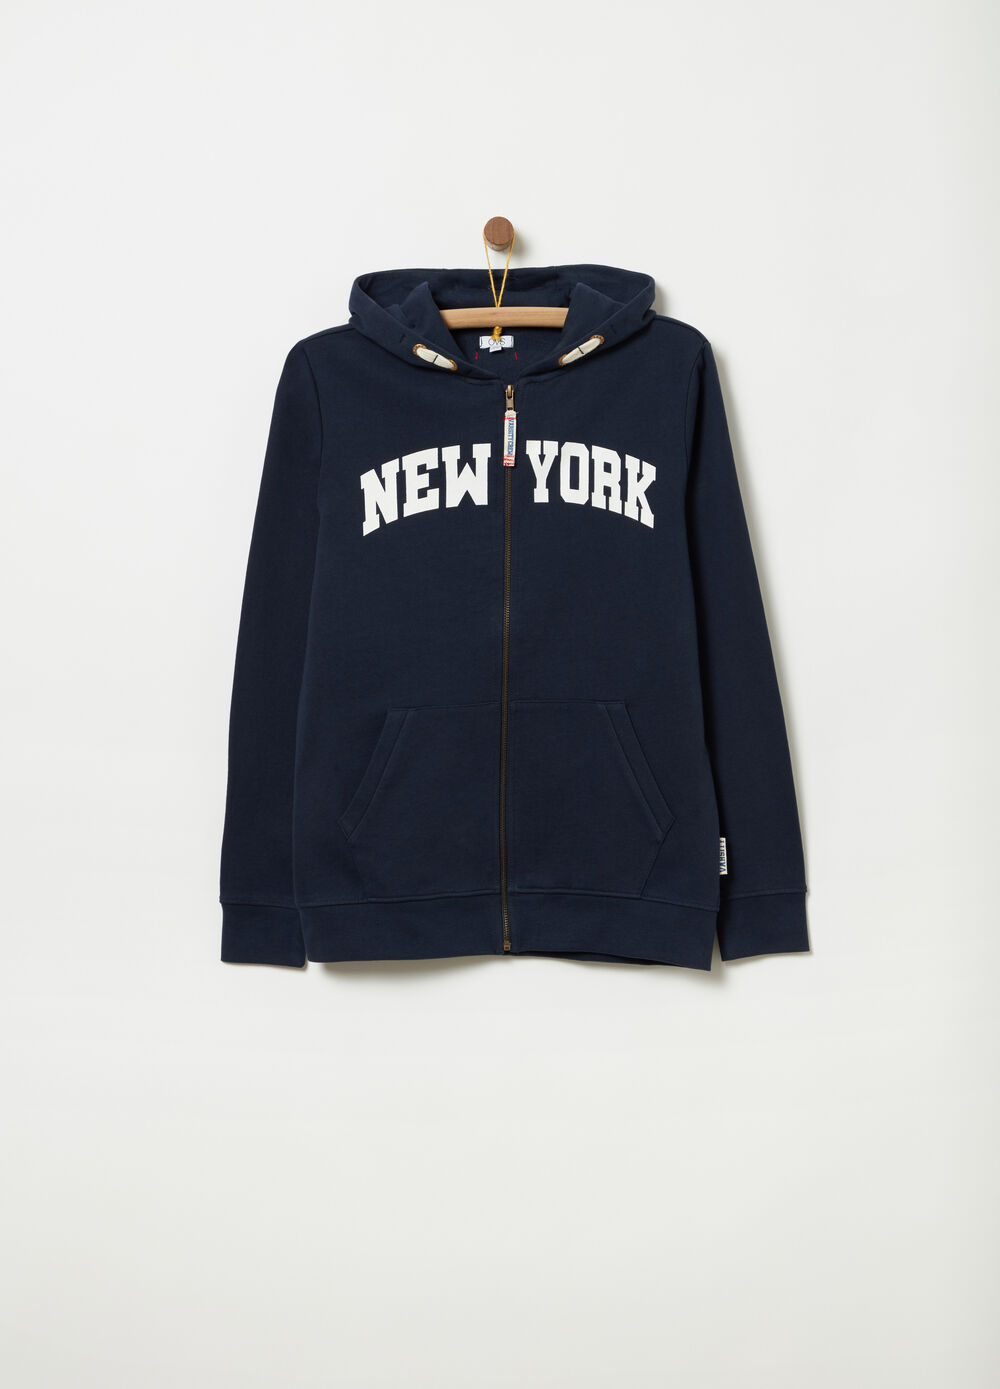 Sweatshirt in 100% cotton with New York print